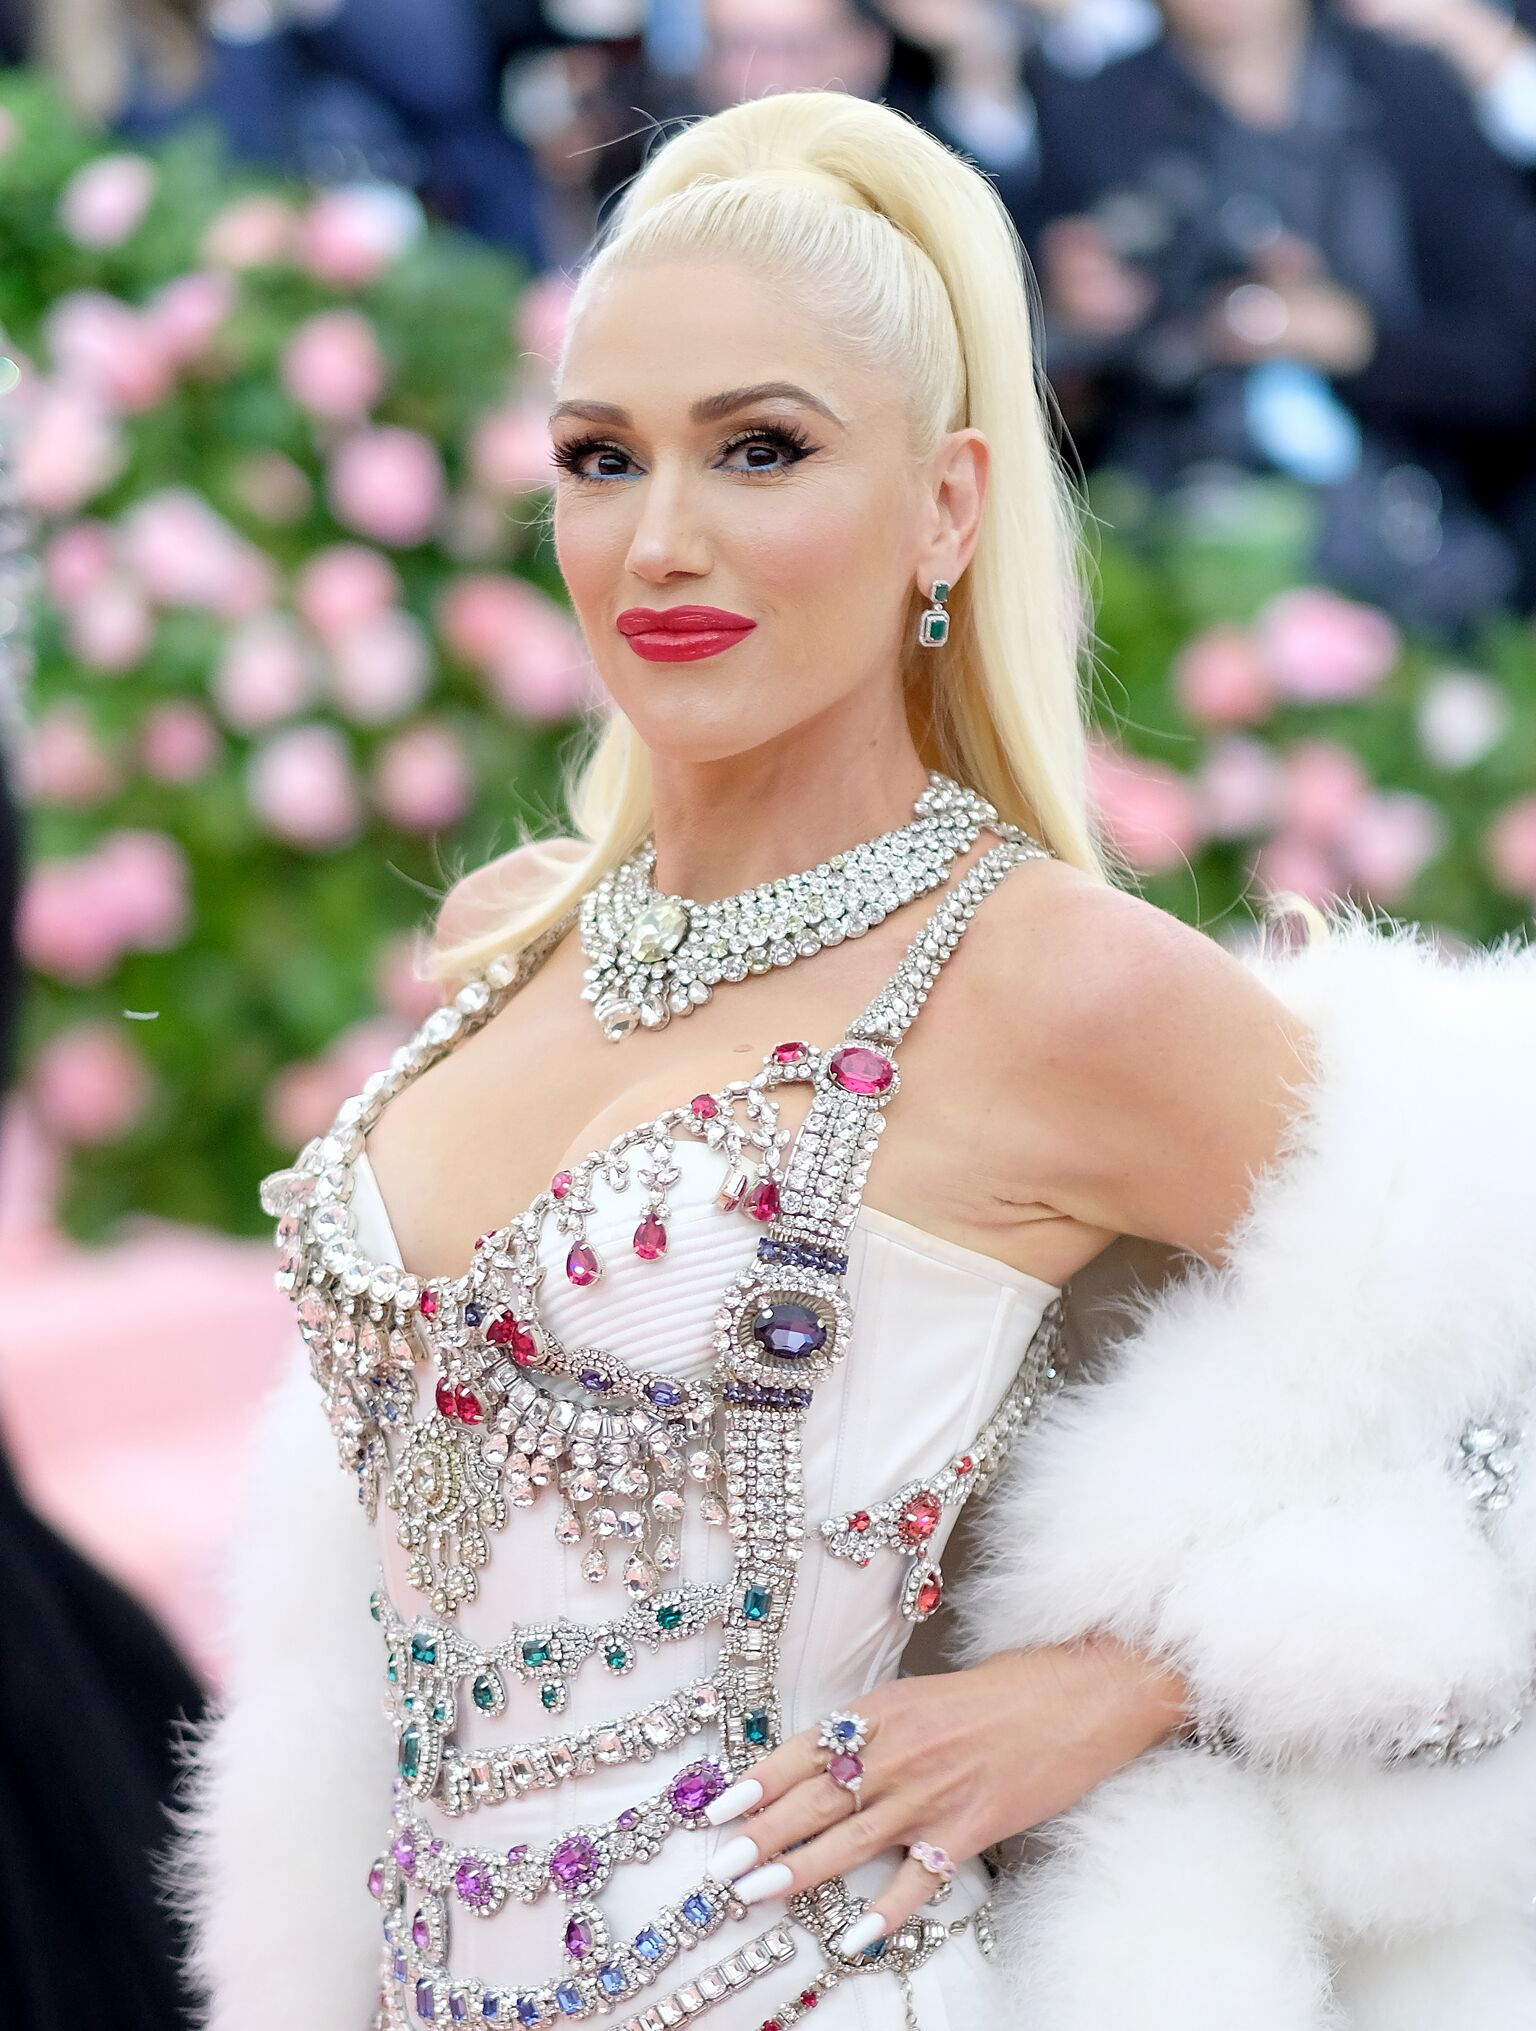 Gwen Stefani participe au camp de célébration du Gala du Met 2019 : Notes sur la mode au Metropolitan Museum of Art le 15 mai 2019 | Photo : Getty Images